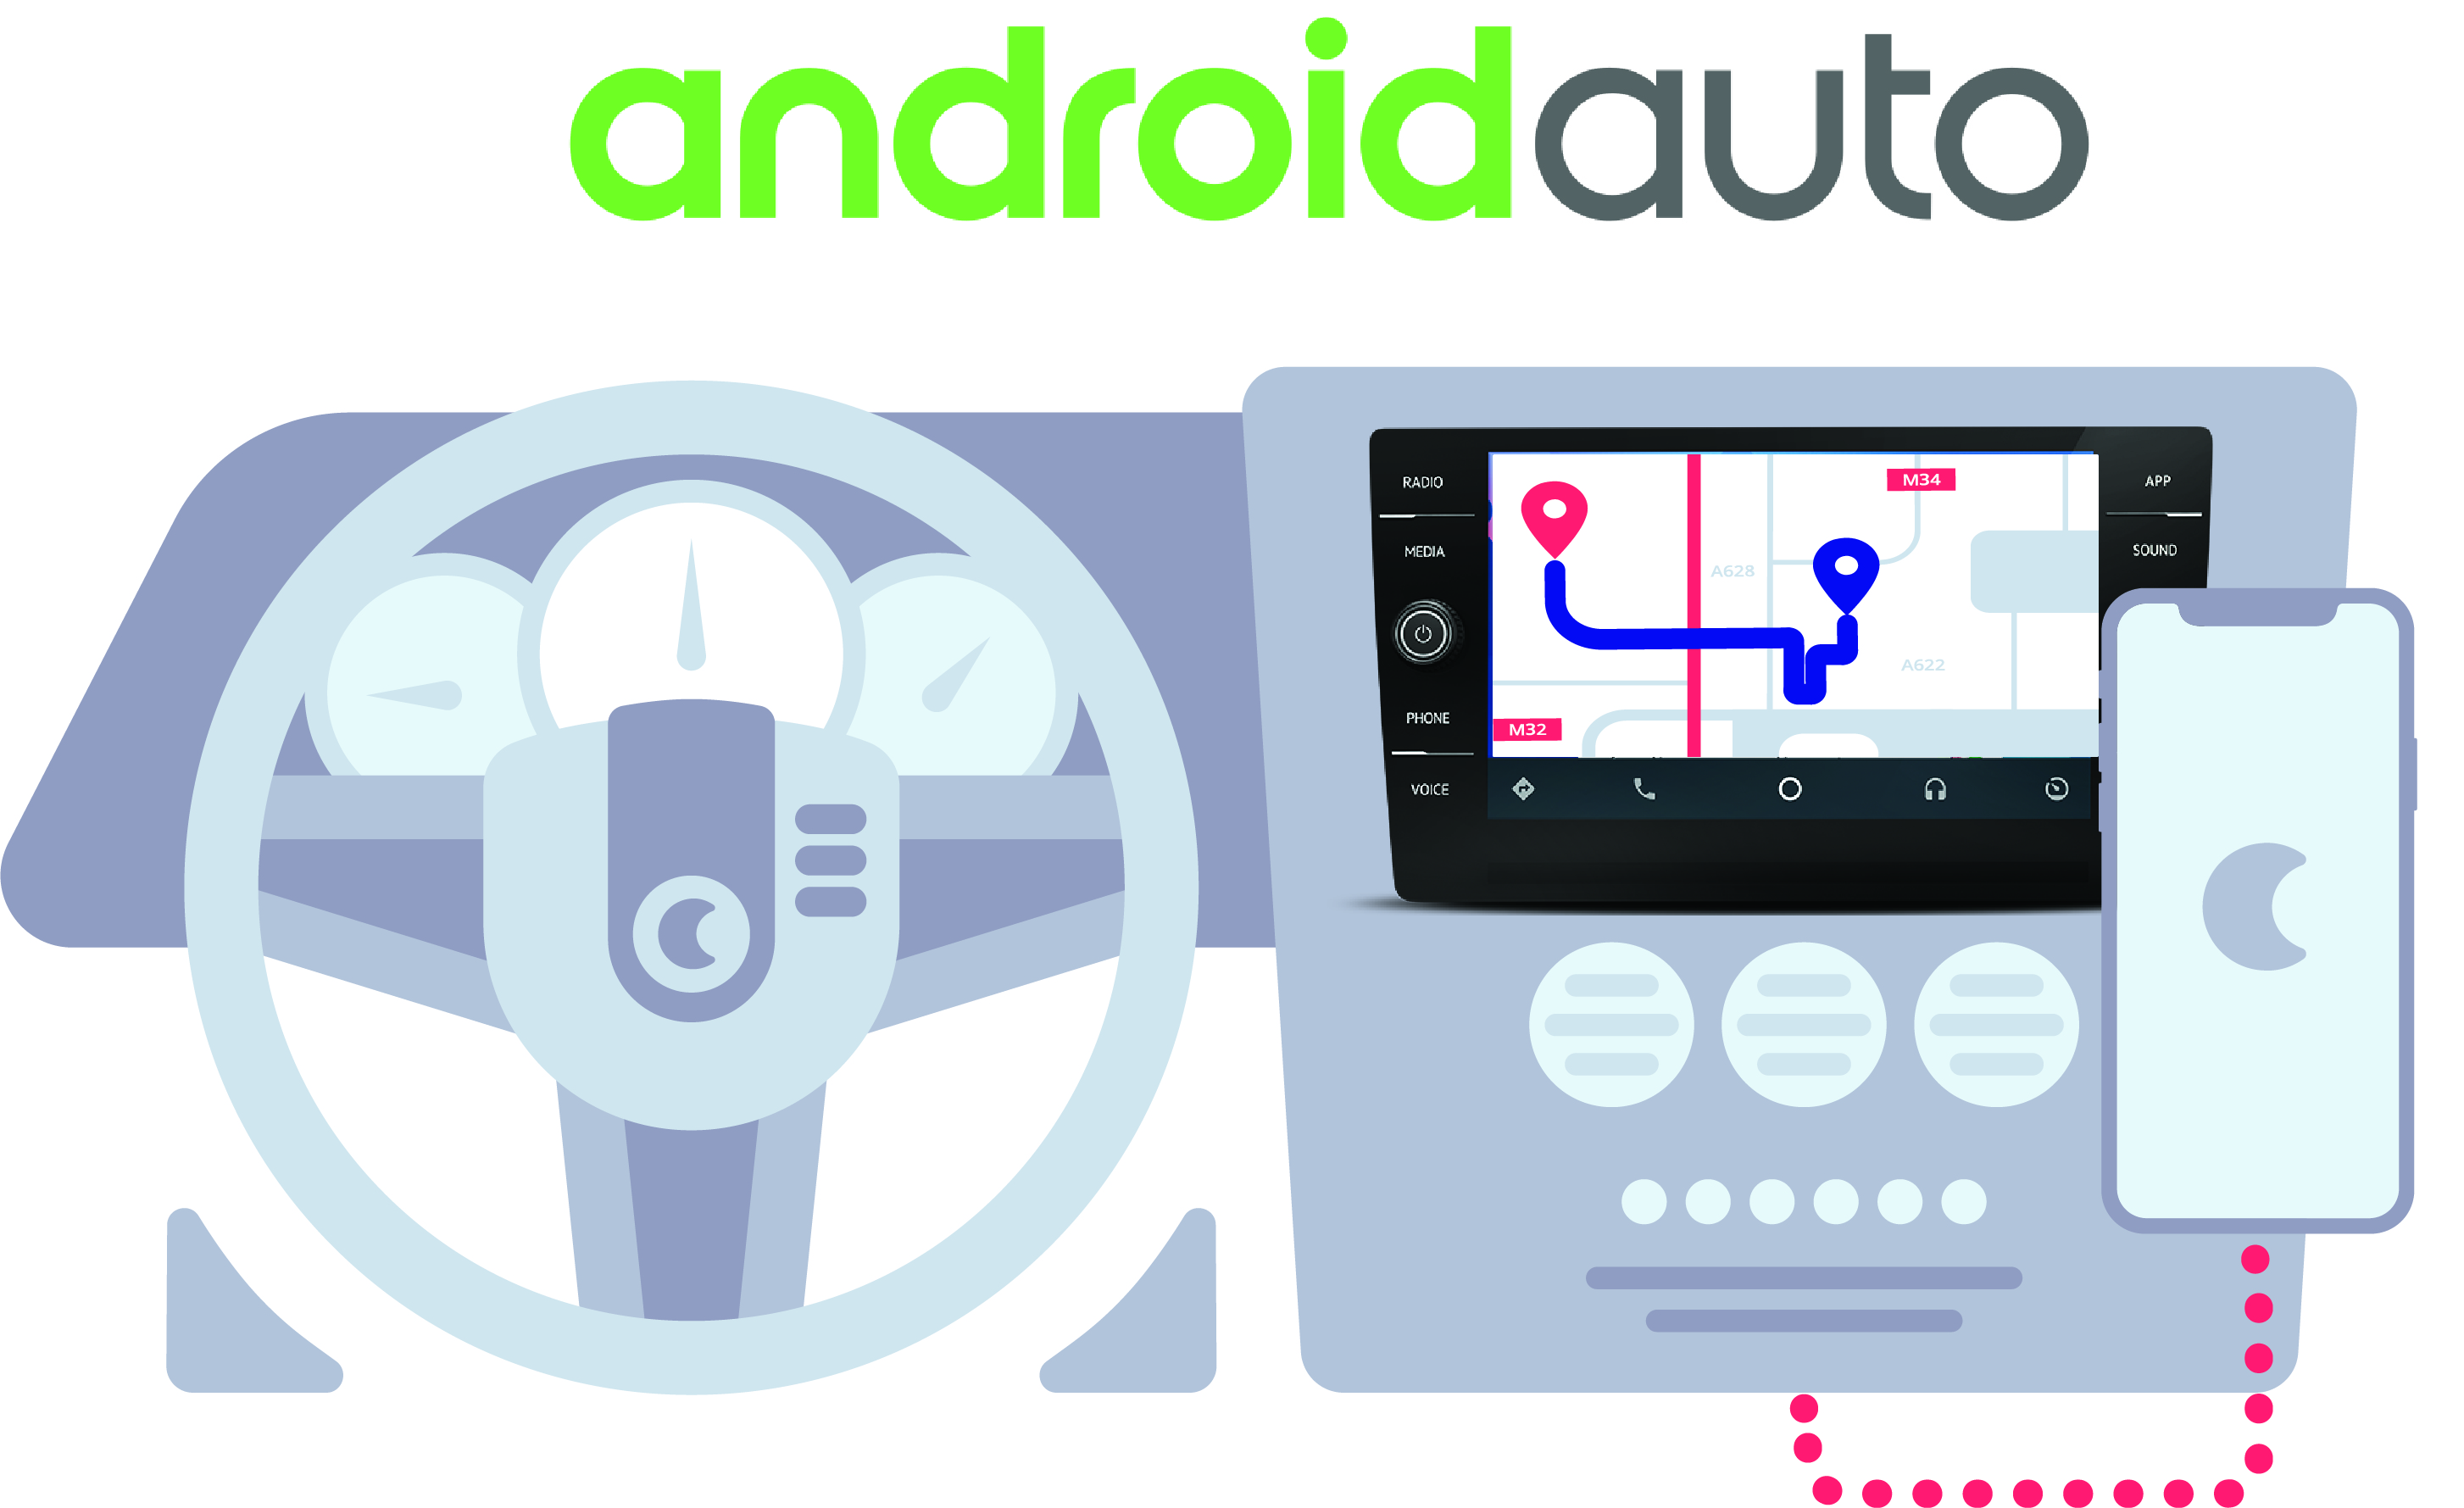 IO19: Android Auto - Open Sesame (For God's Sake and 3rd Party